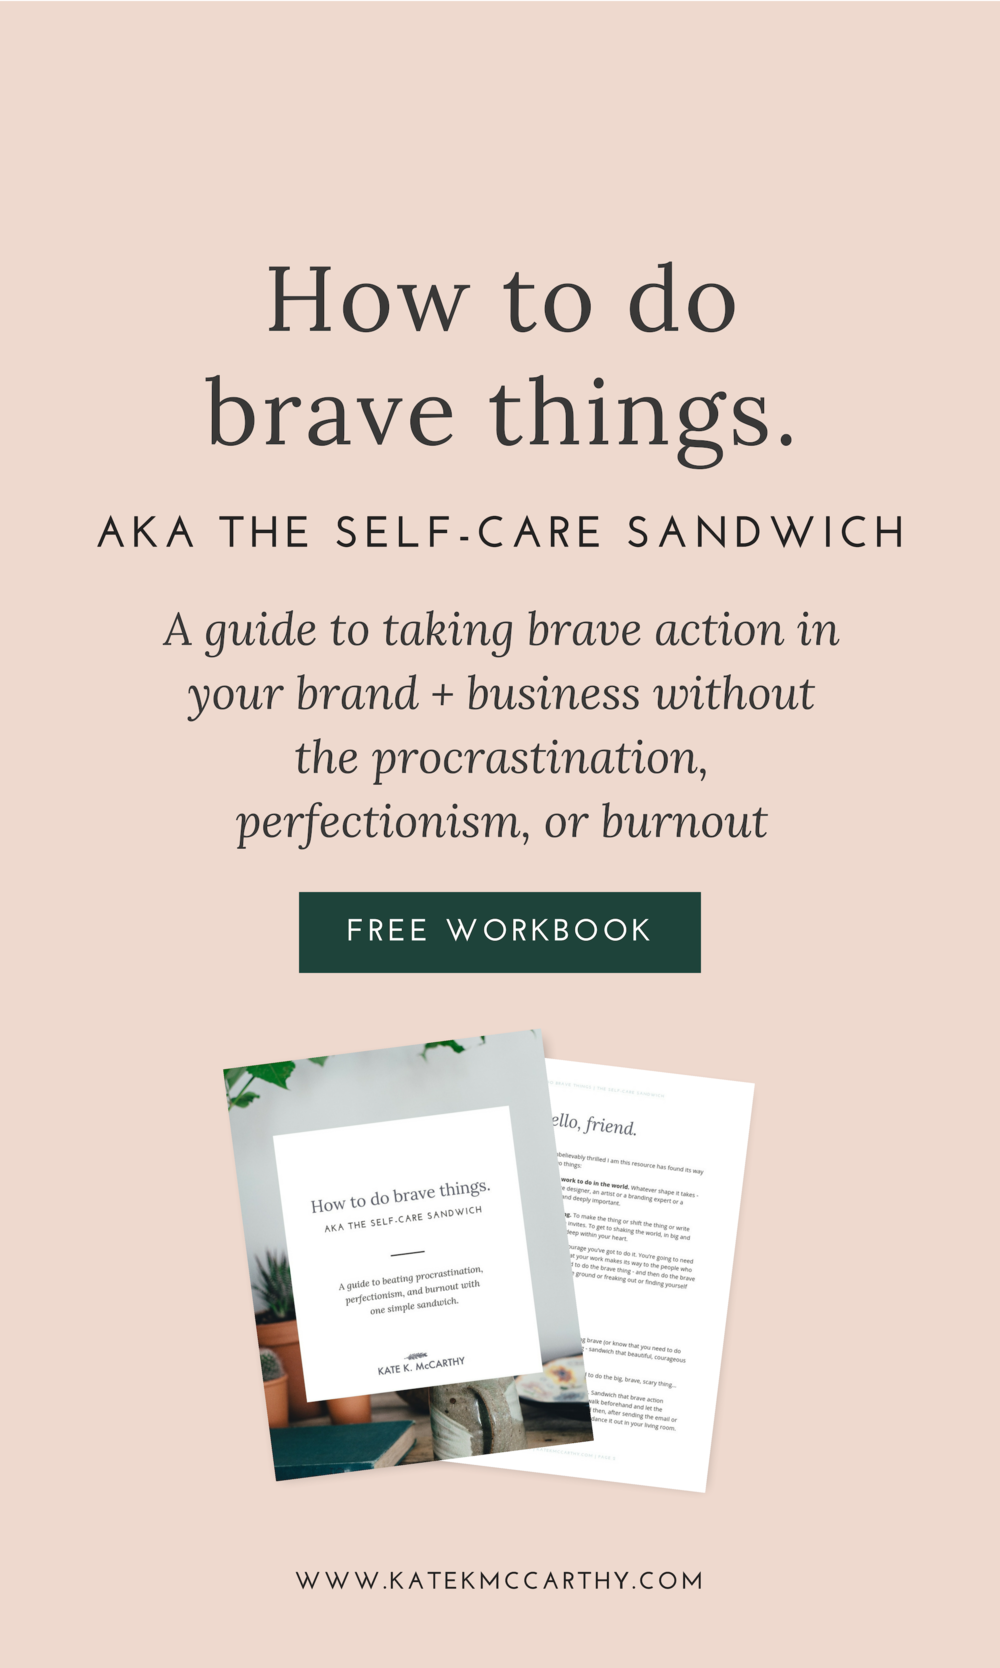 Kate K. McCarthy | How To Do Brave Things (aka The Self-Care Sandwich)